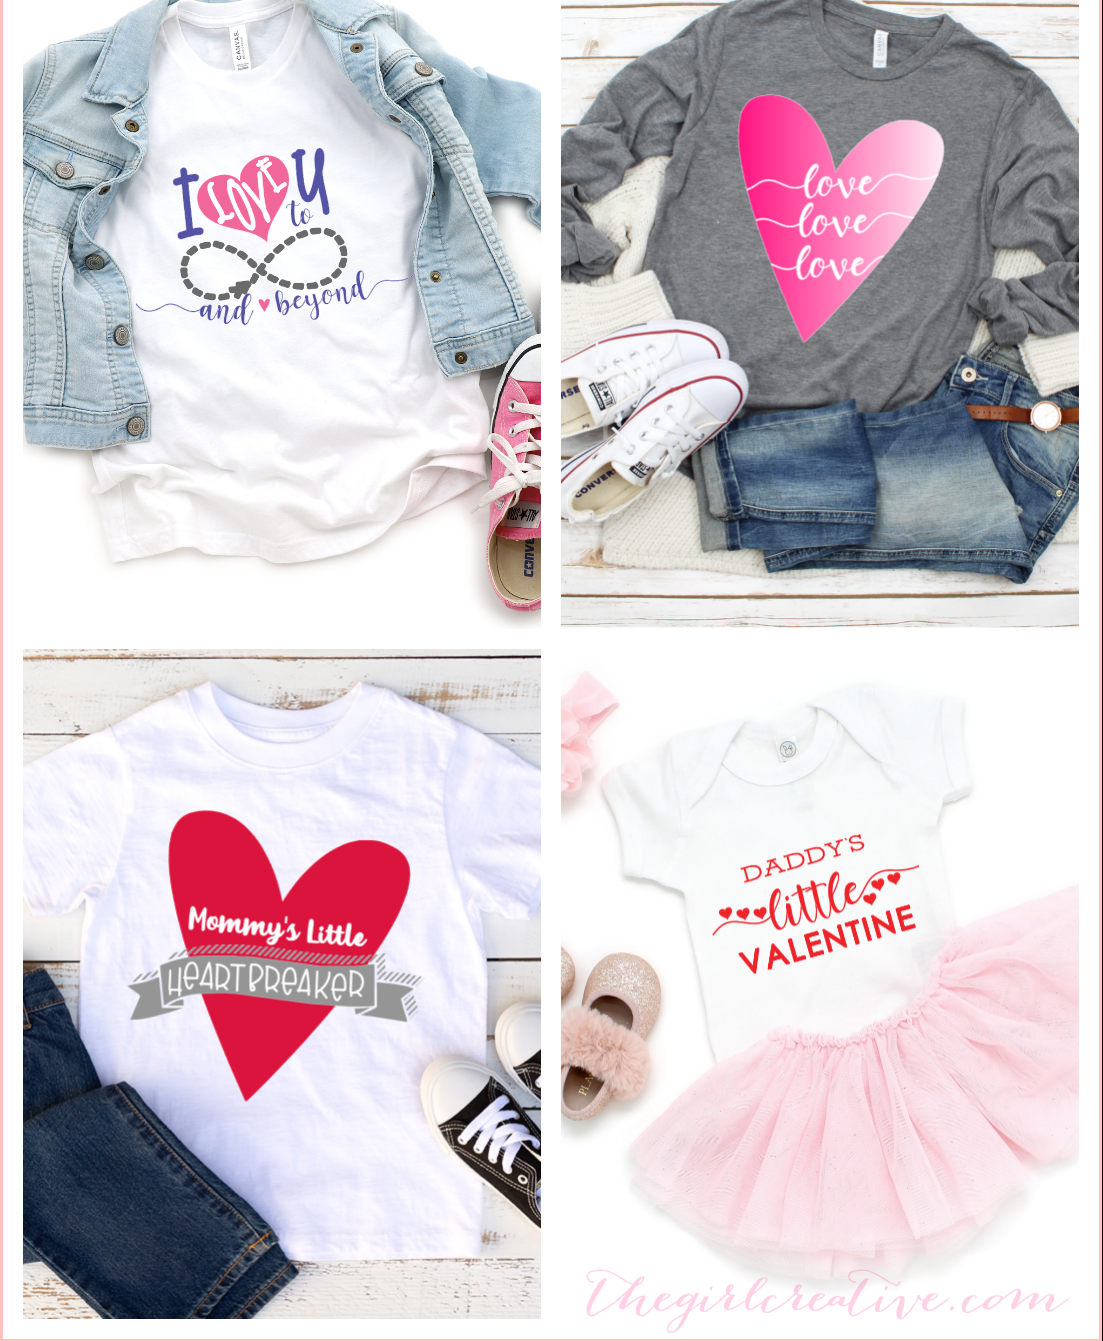 A collection of Valentine's Day SVG designs used on t-shirts that you can DIY yourself using your Cricut or Silhouette